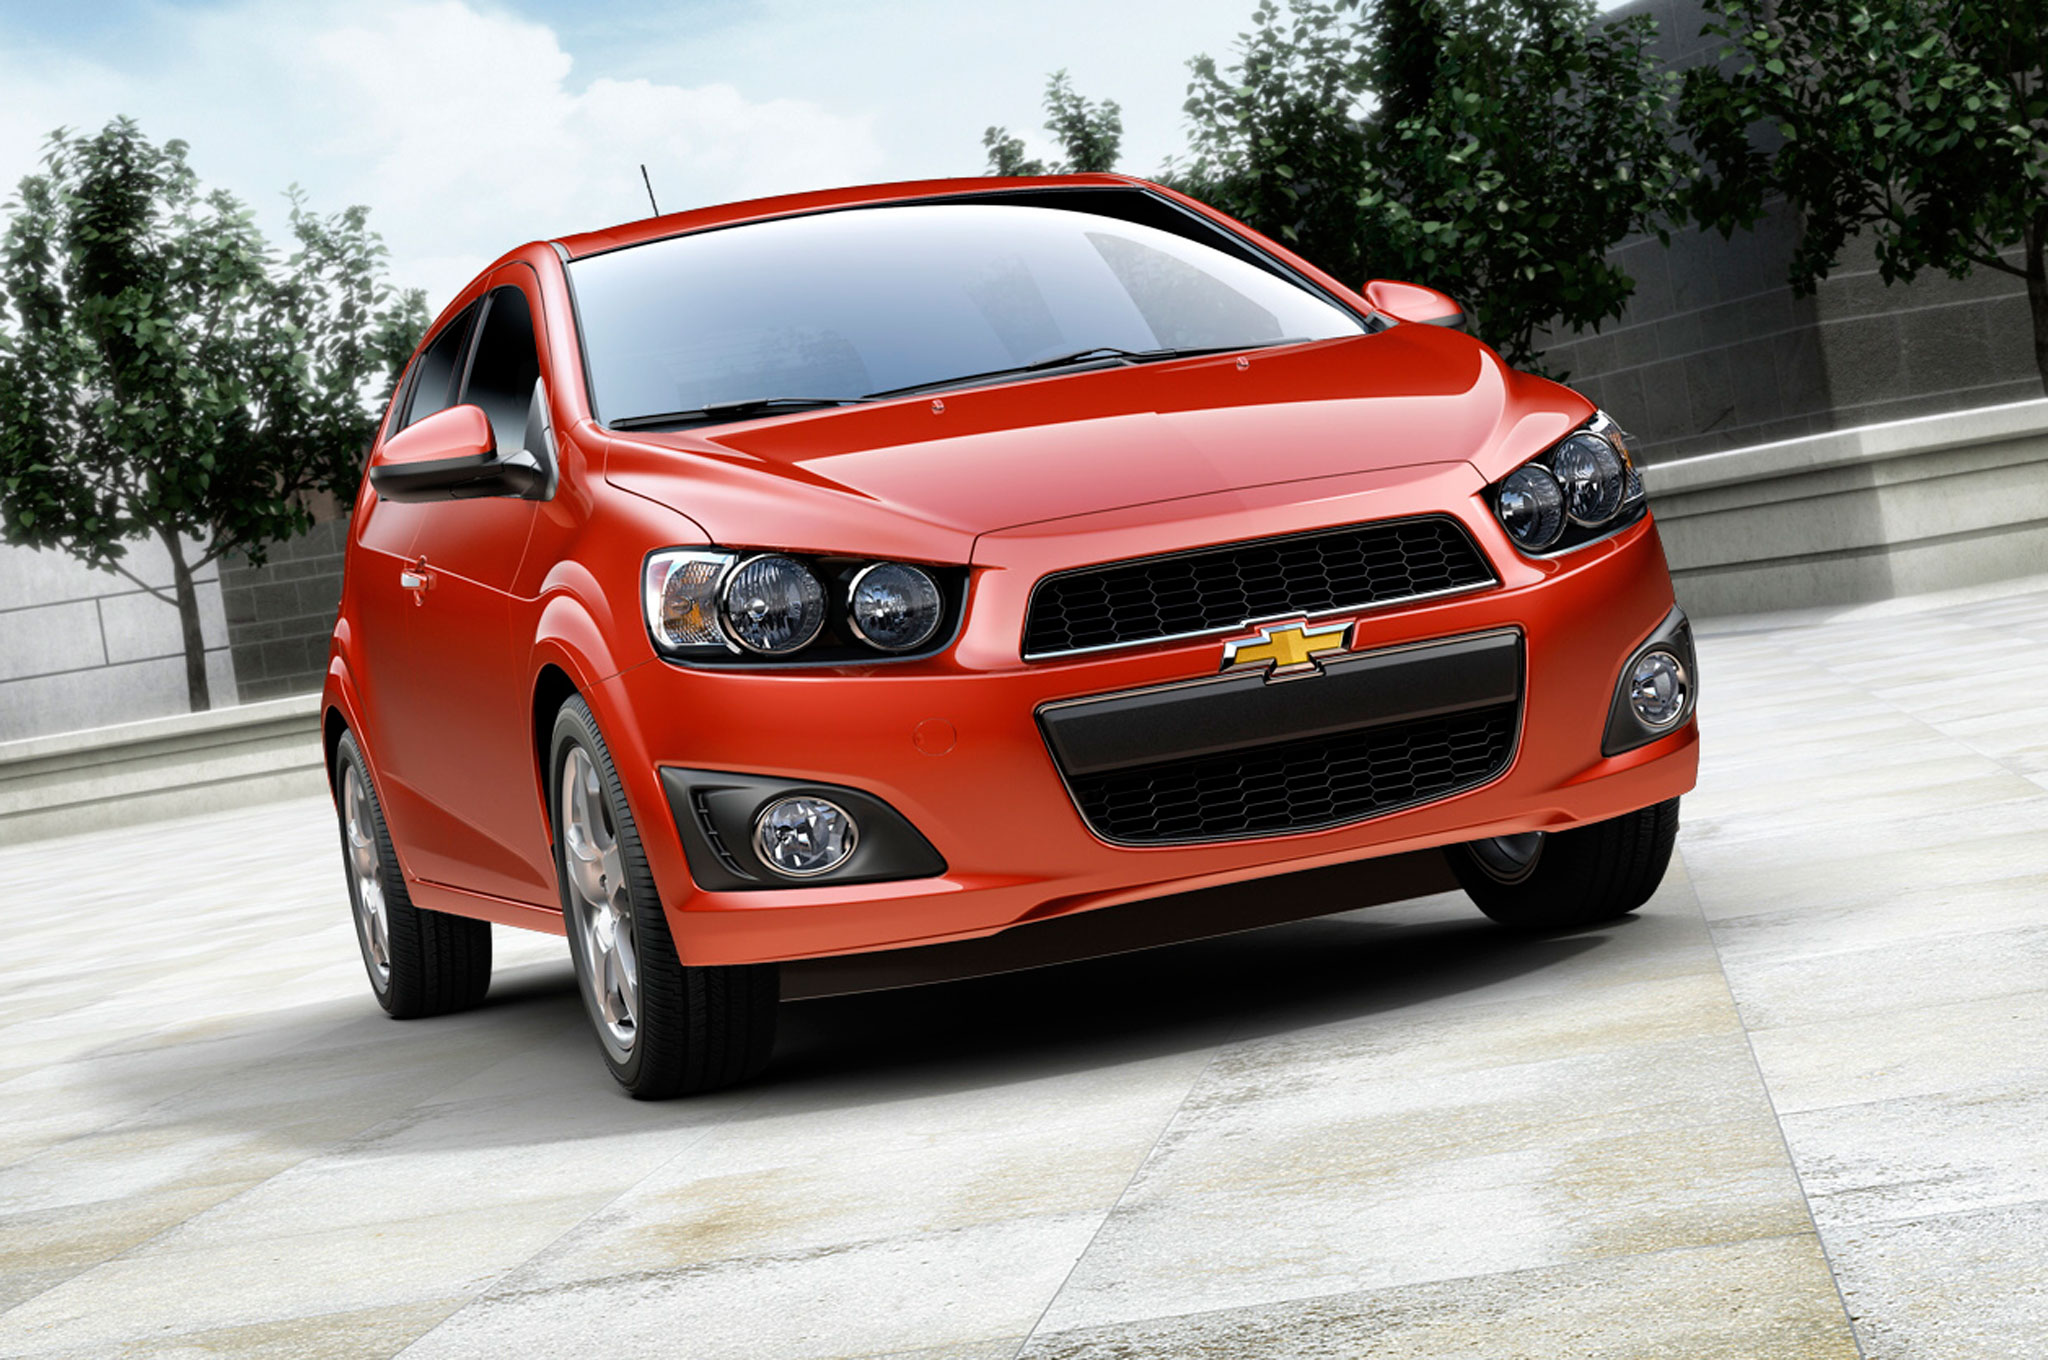 Chevrolet Sonic Repair Manual: Turbocharger Installation